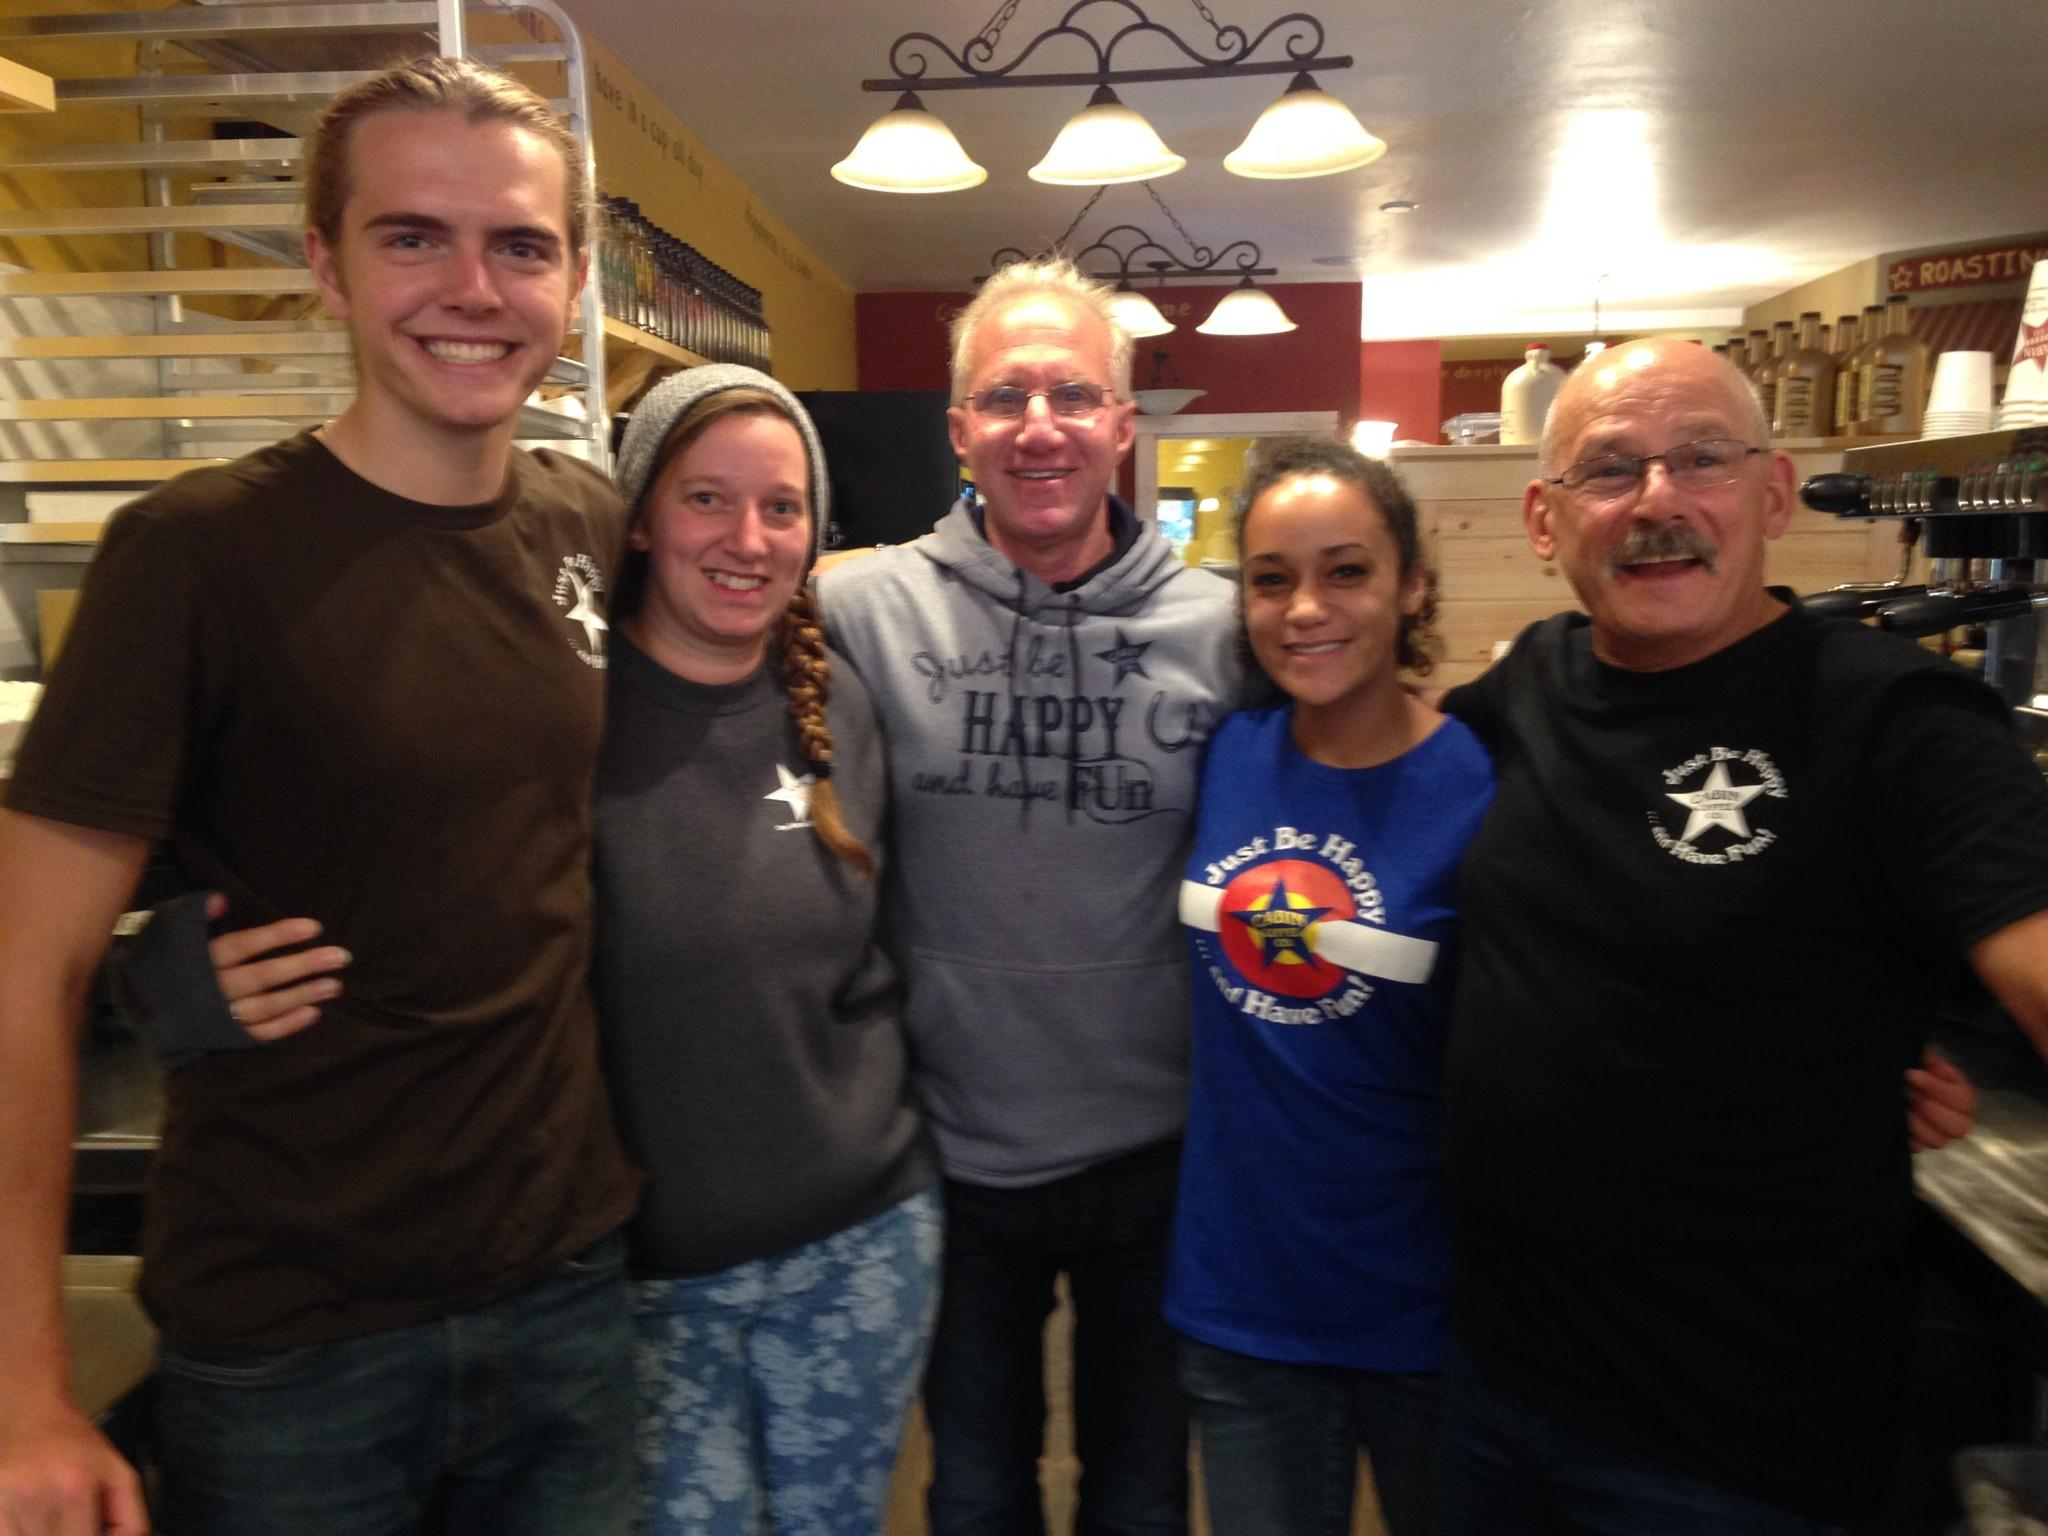 Breckenridge Staff with Kathy and Brad from Clear Lake: Jeremy, Malia, and Bob